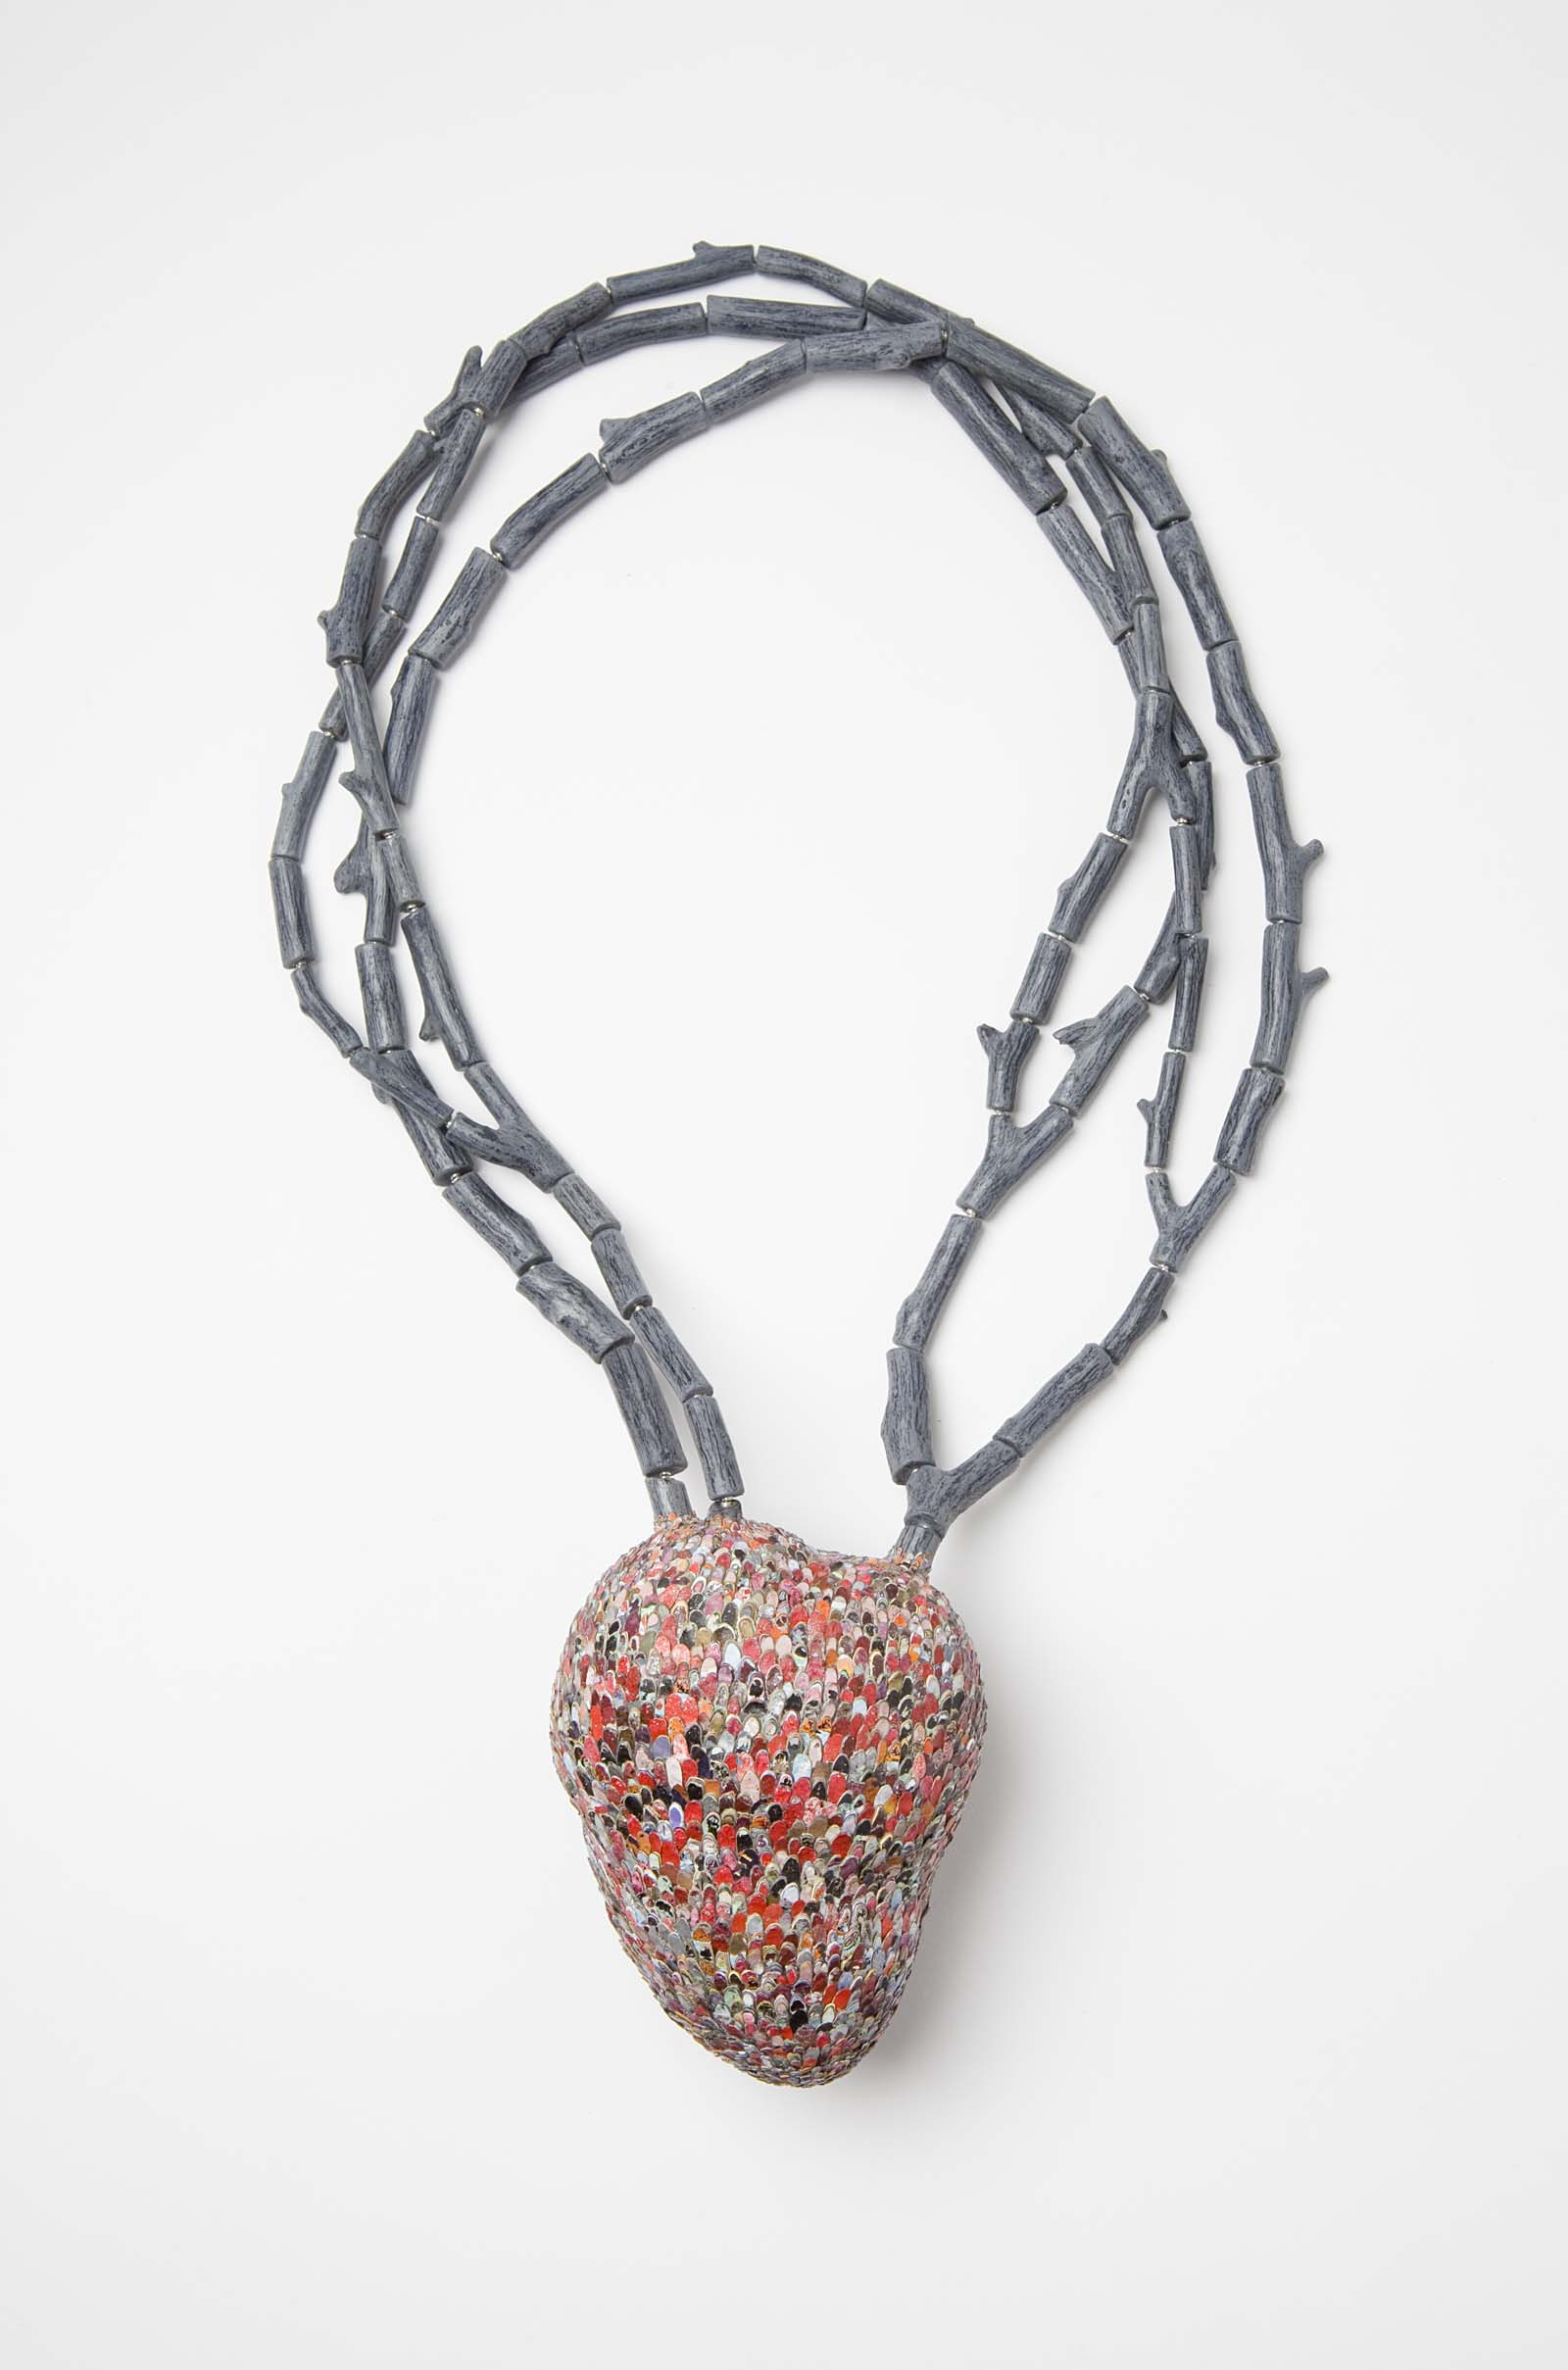 """Heart Tree"" I Necklace, 2014 I Graffiti, wood, silver, steel wire, paint  I Photo: Mirei Takeuchi"